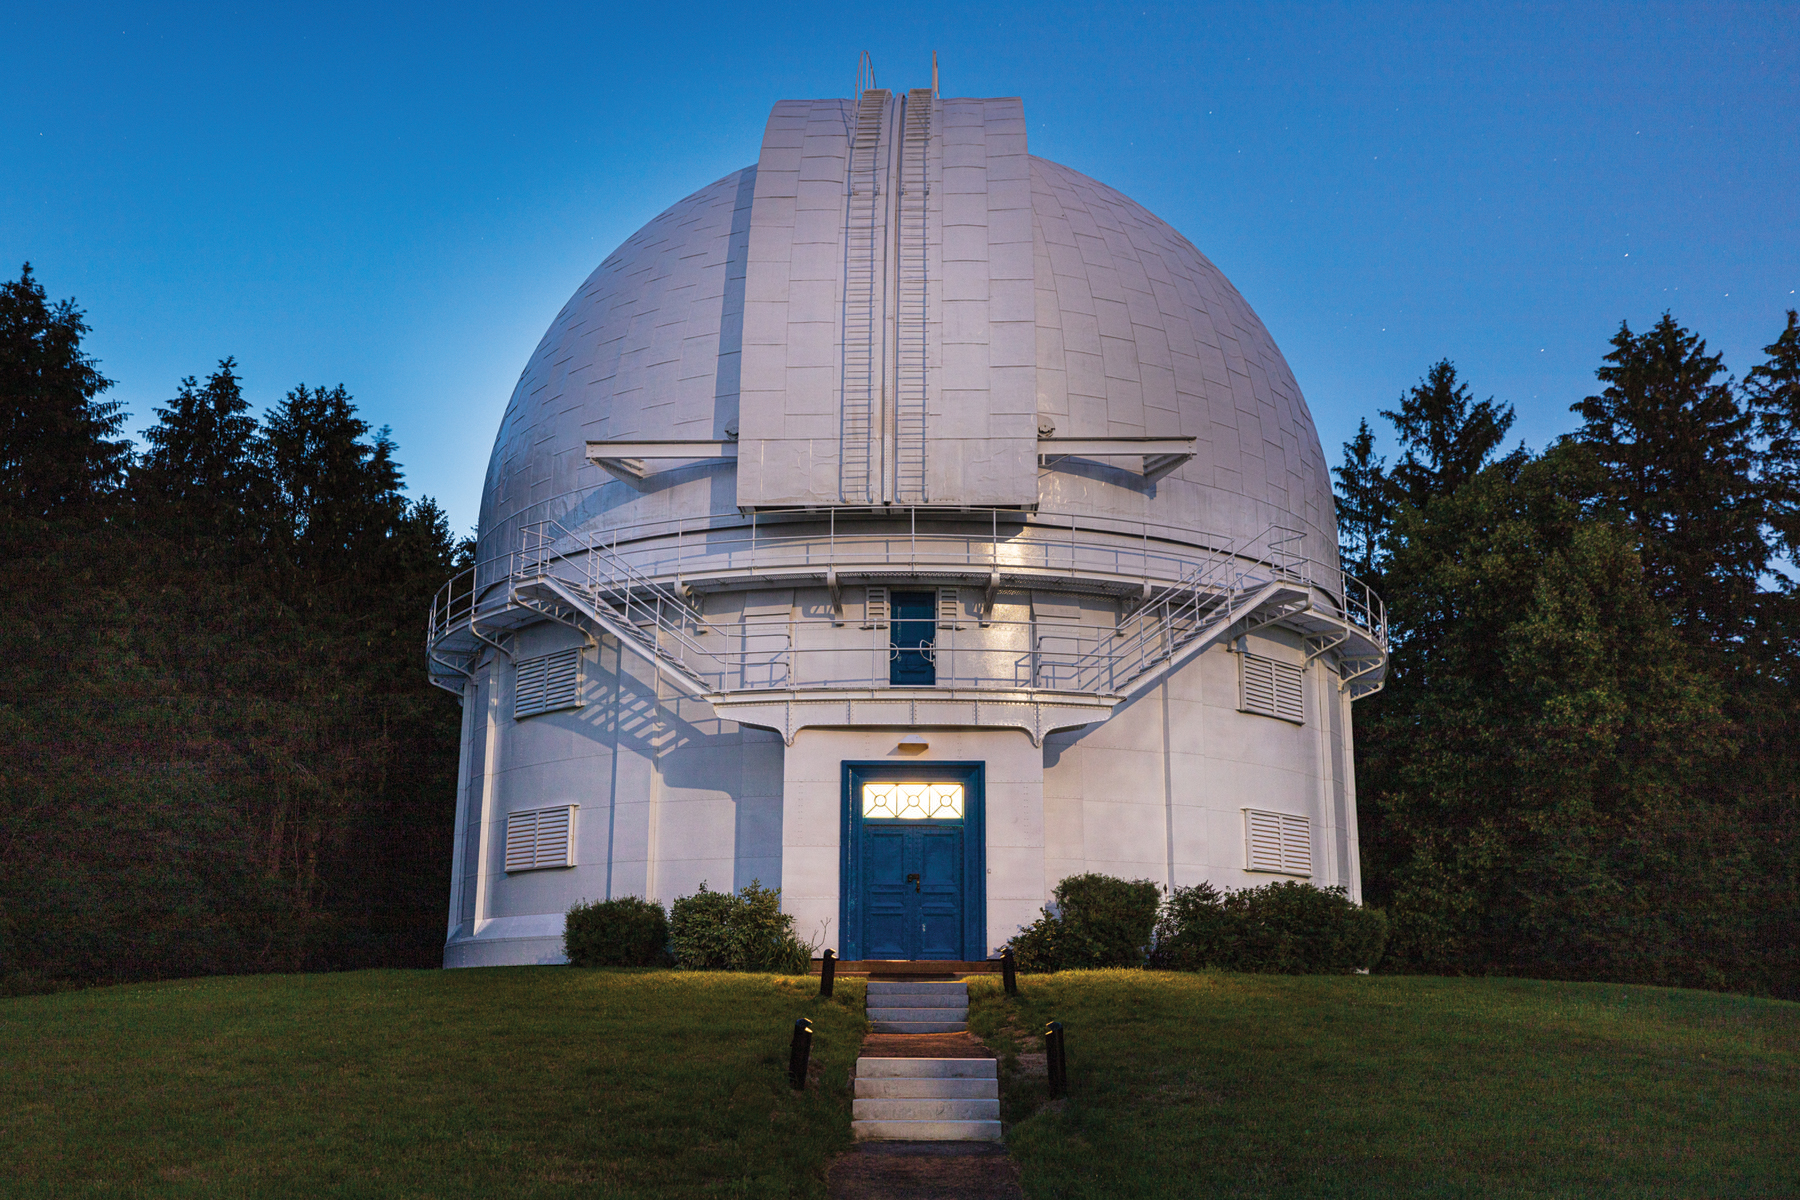 White Observatory with illuminated blue door with green lawn and trees at dusk